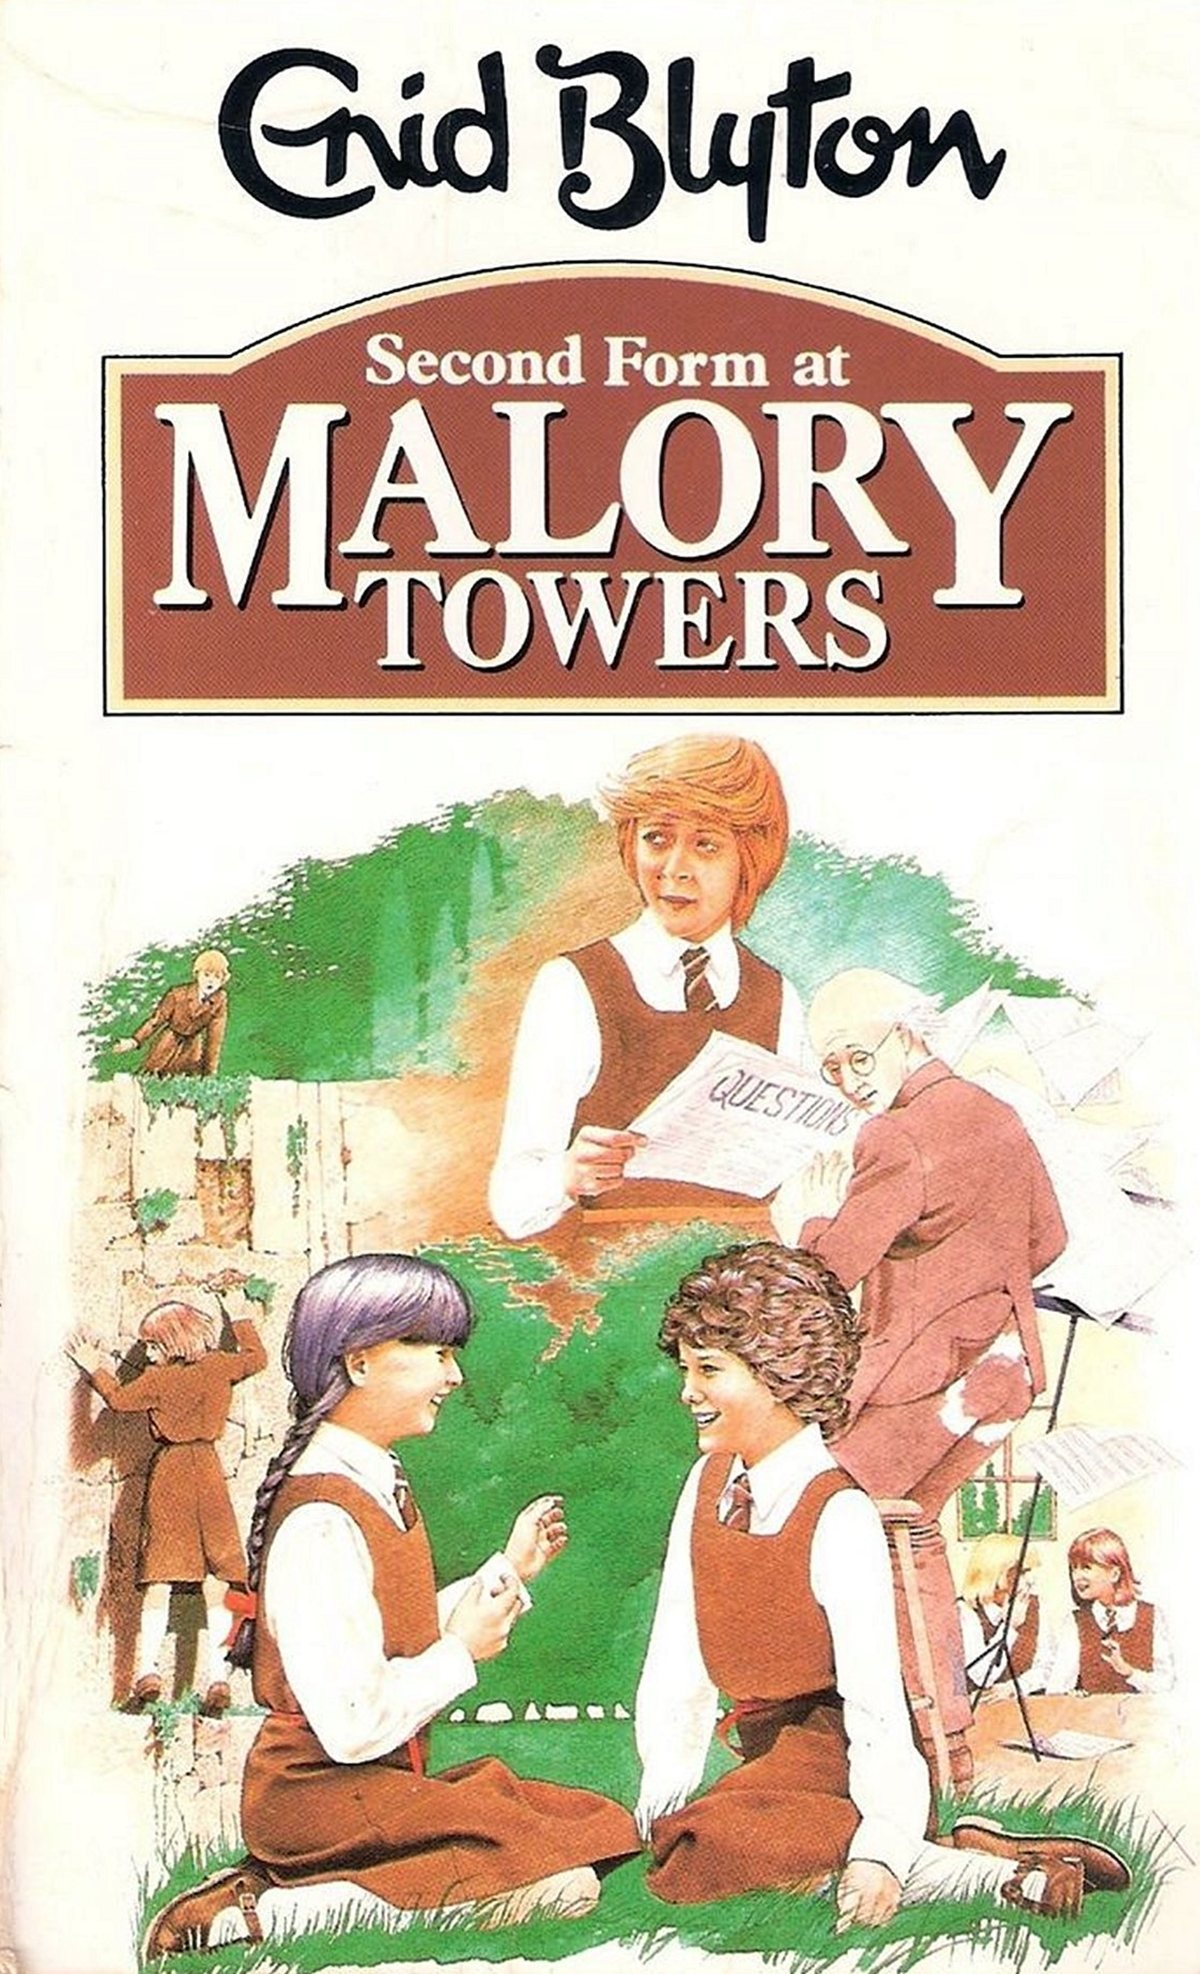 6 20 12 More Childhood Books You've Probably Forgotten About